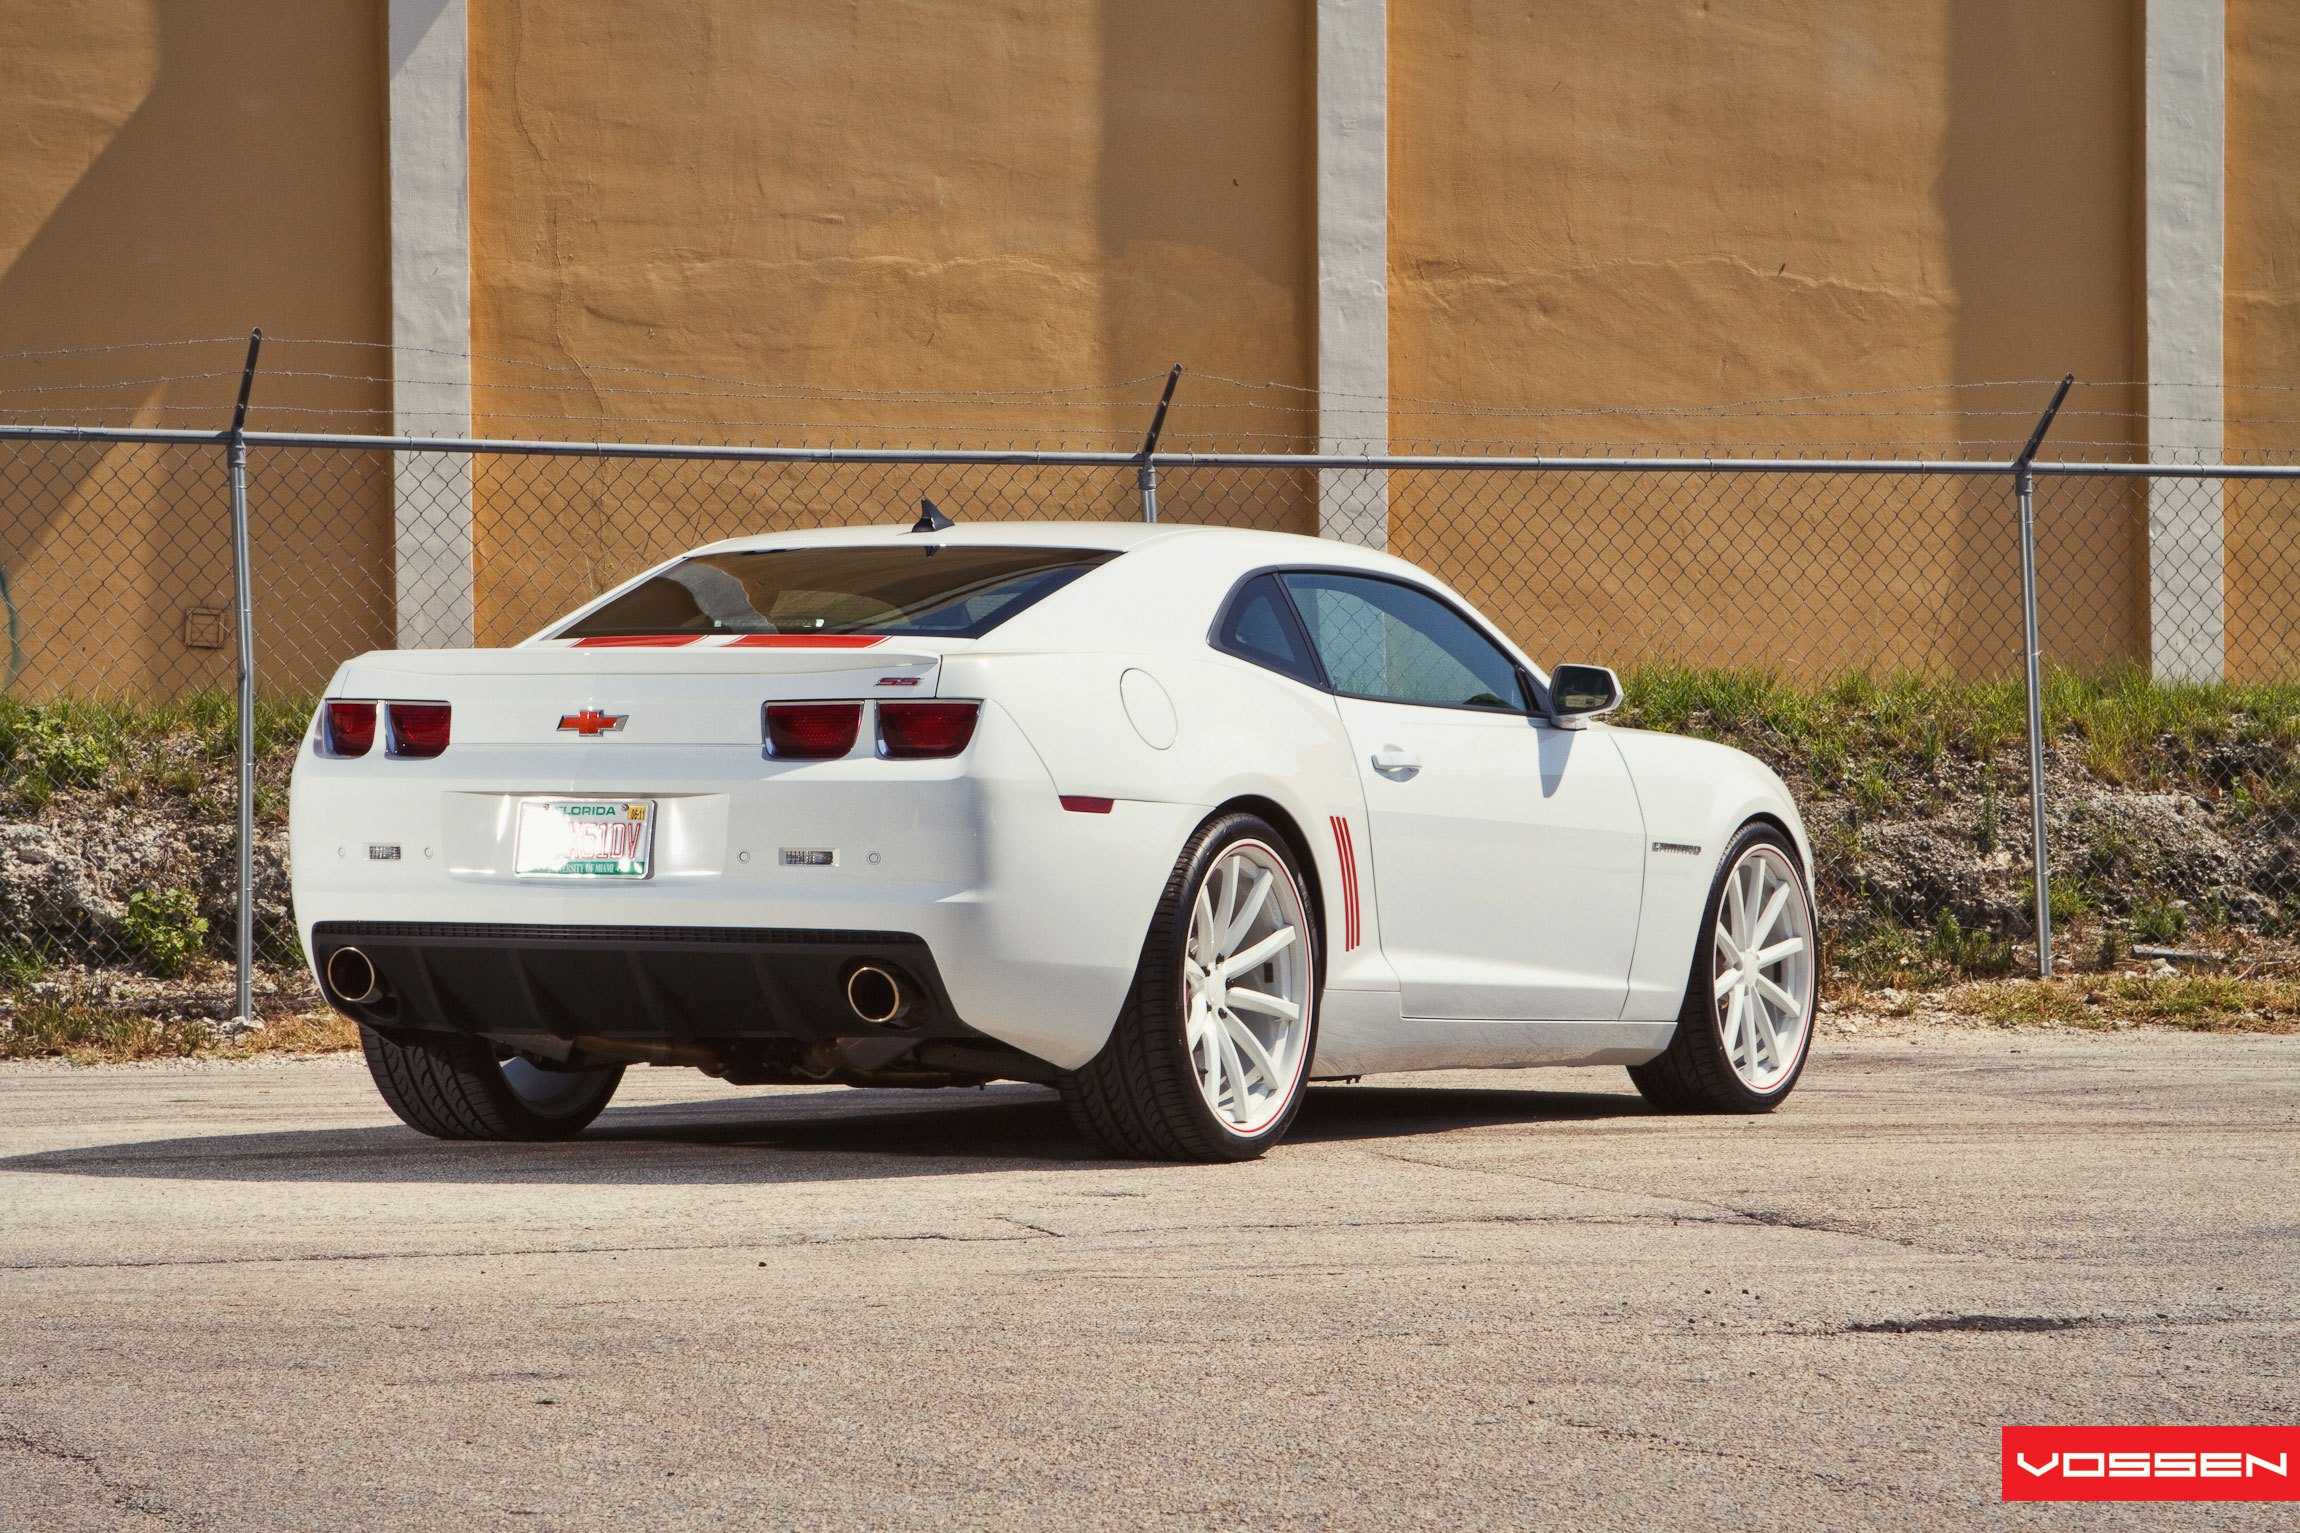 Aftermarket Rear Diffuser on White Chevy Camaro - Photo by Vossen